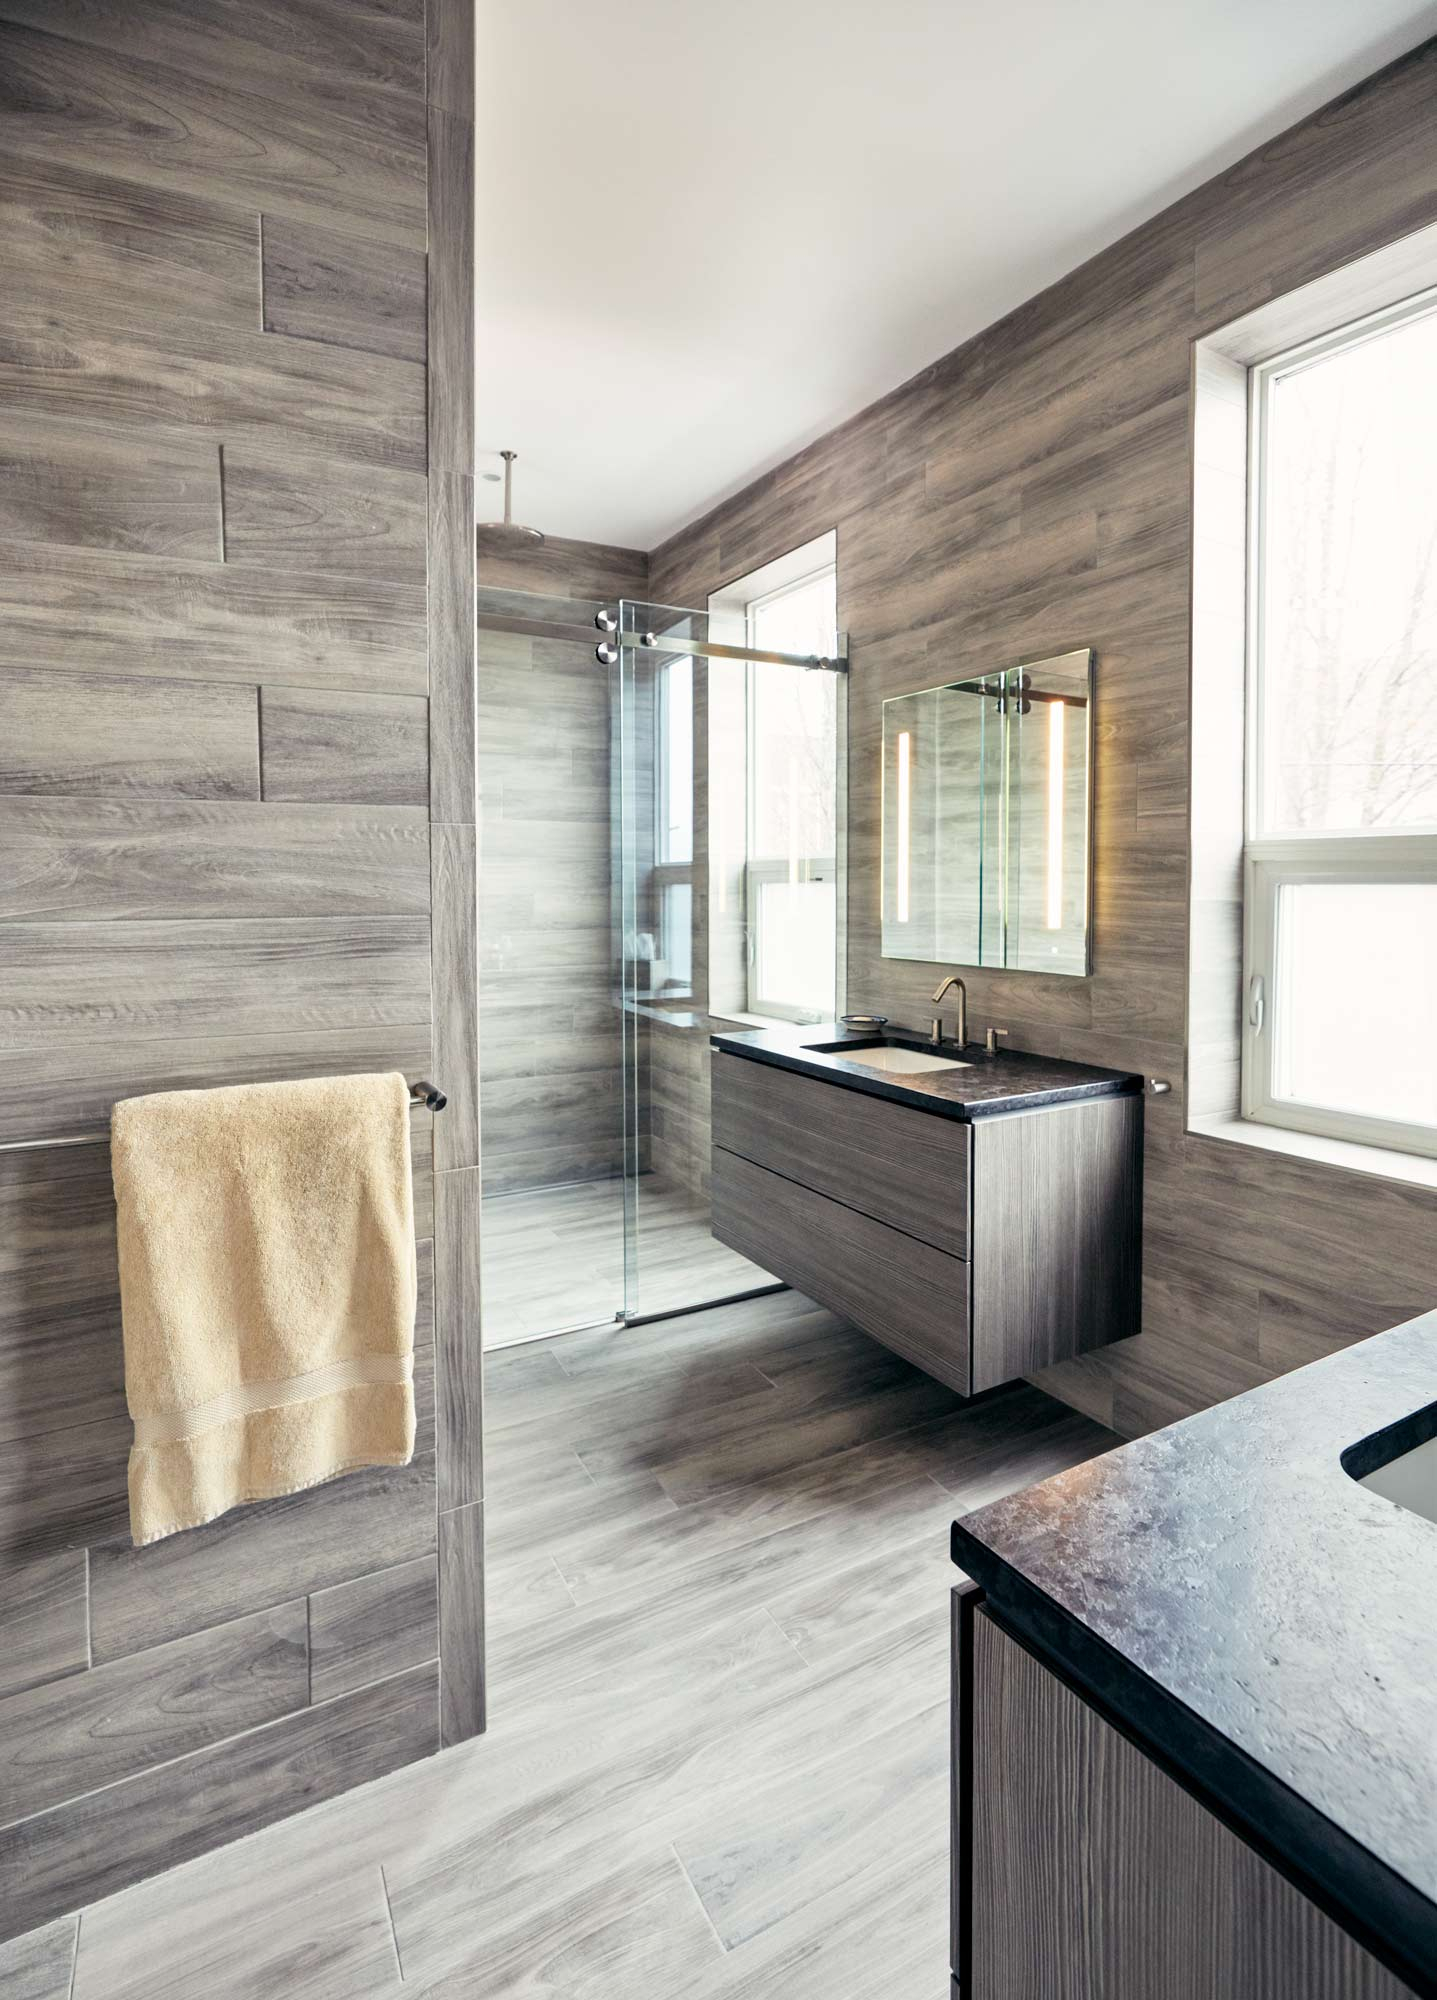 Much like the kitchen, large geometric blocks shape the master bath.